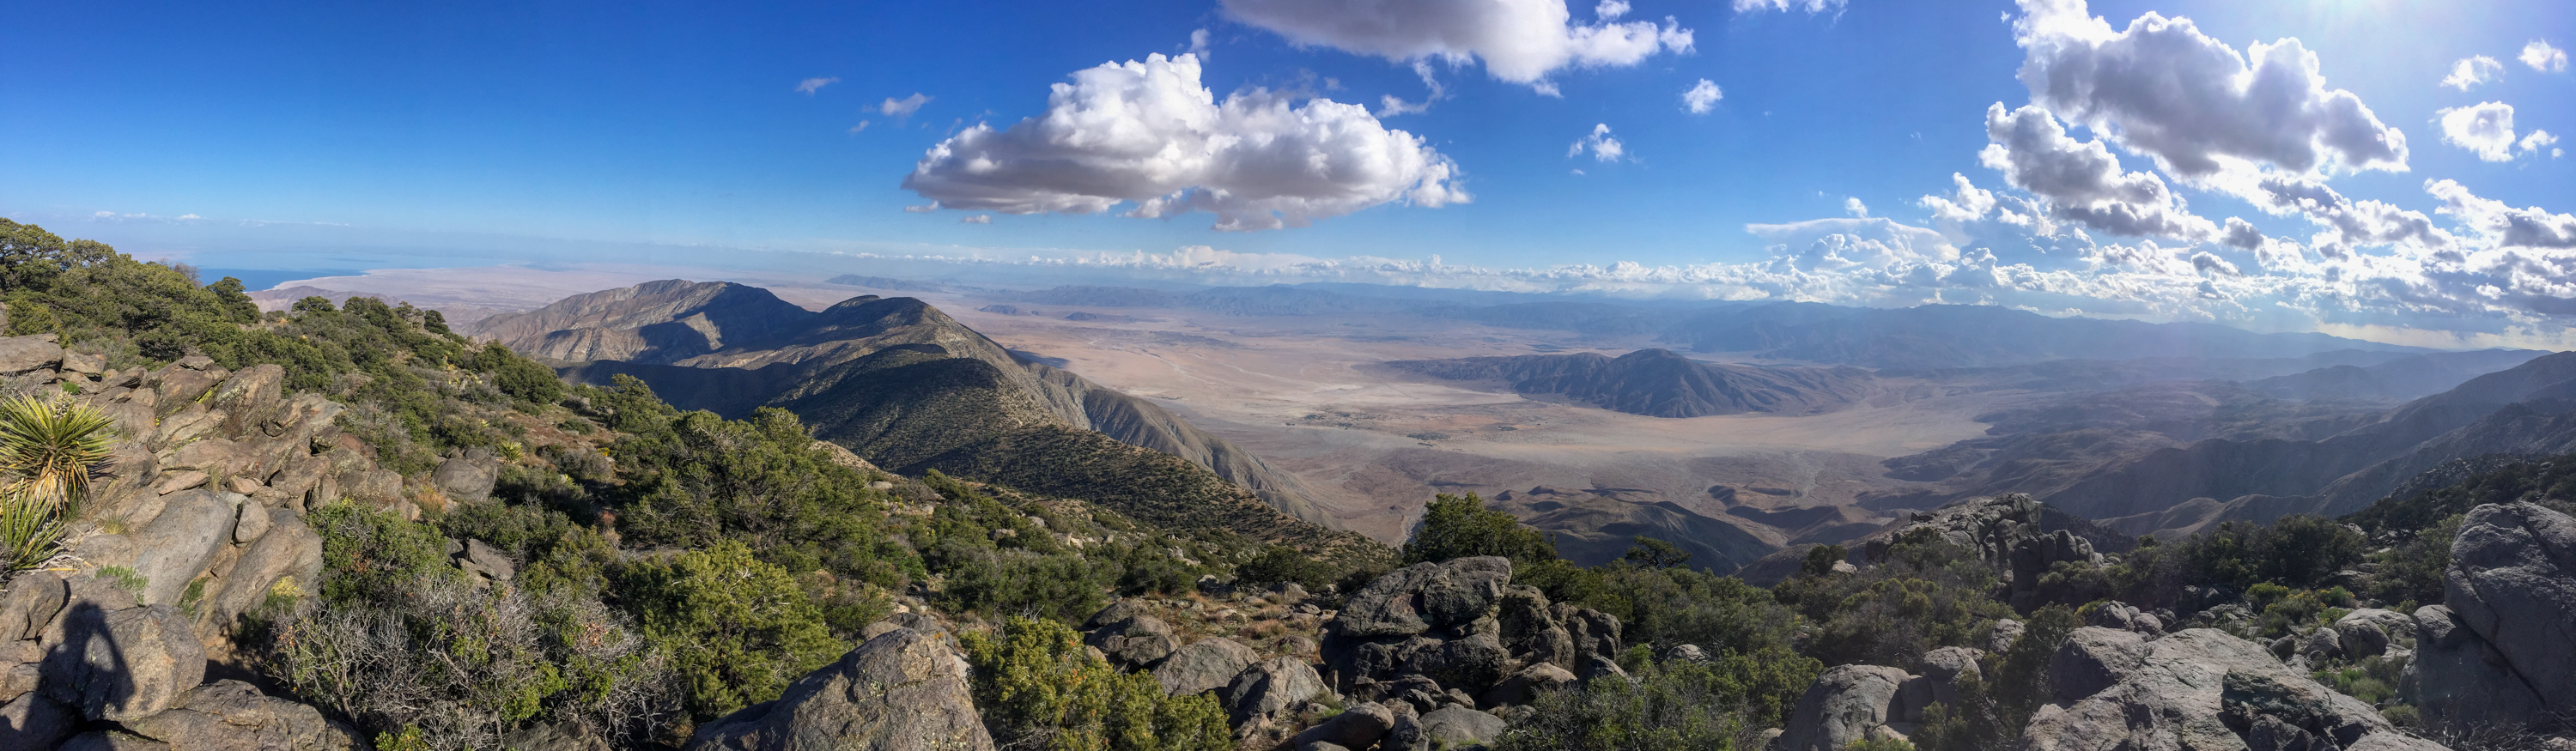 Panoramic view of the desert from atop Rabbit Peak.